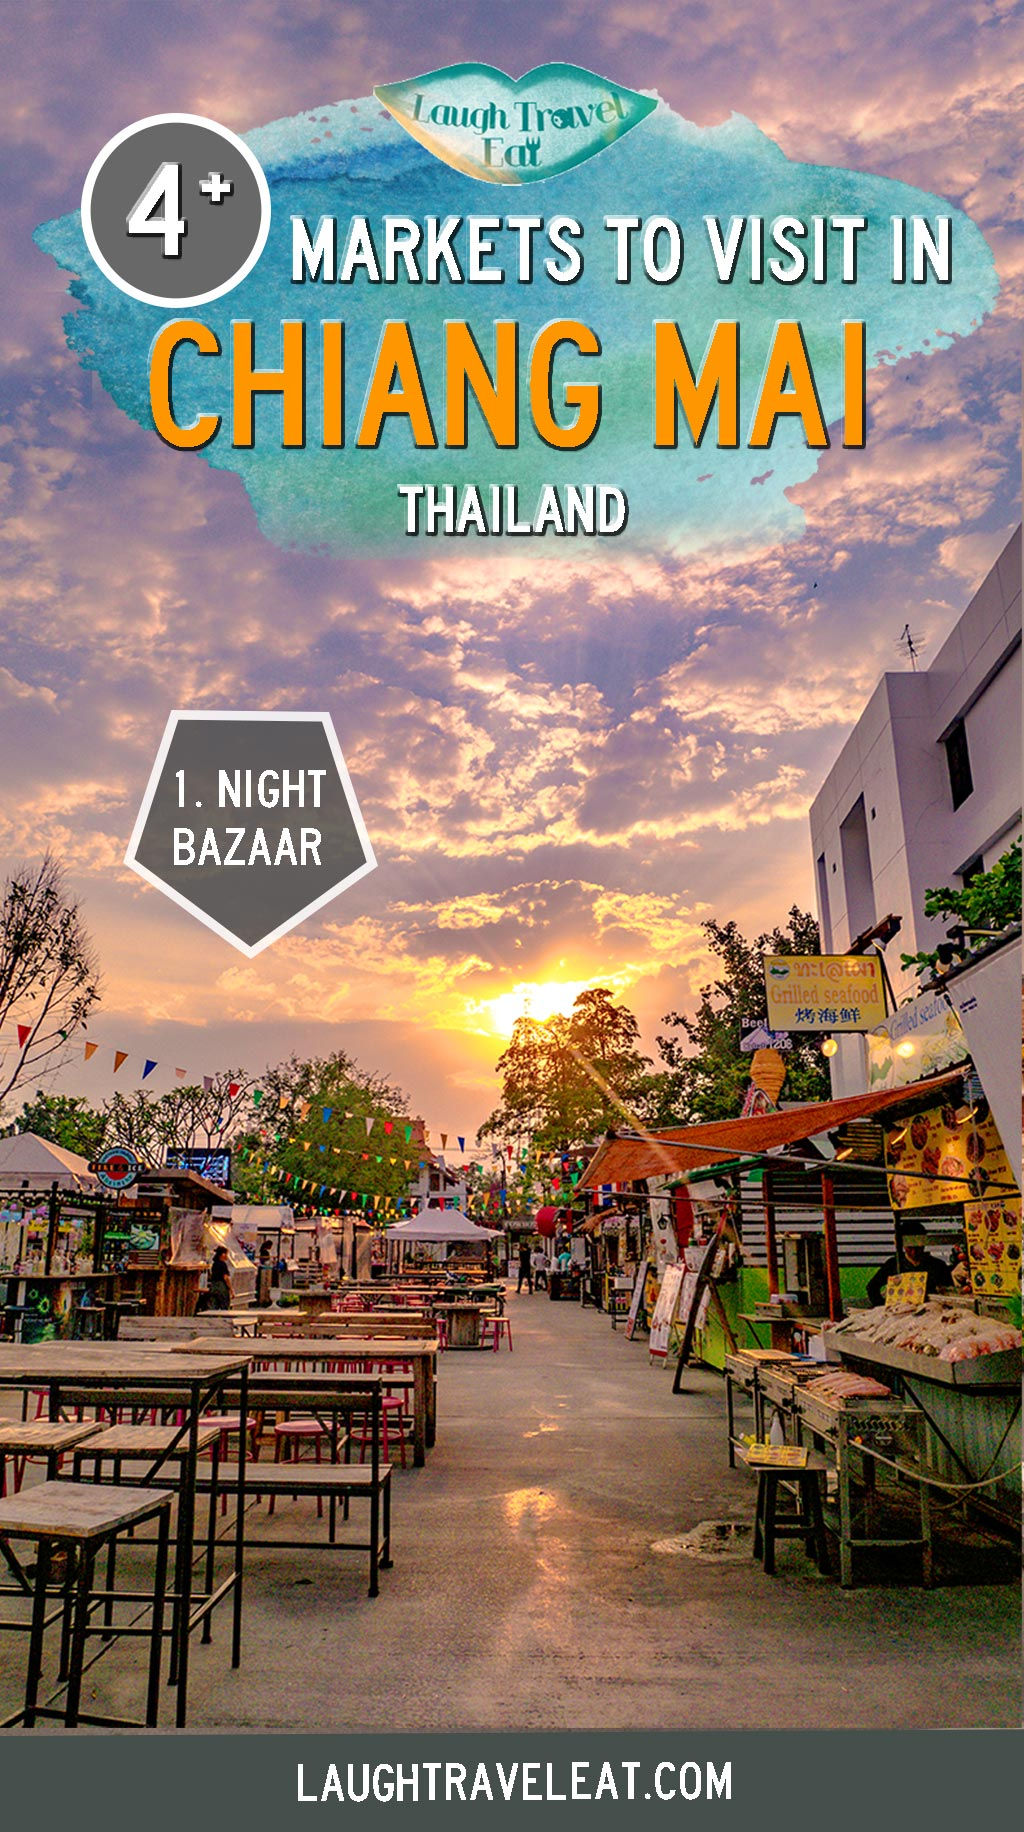 Chiang Mai is full of markets. Short of time, I visited the Night Bazaar, Warorot market, the Saturday Night Market, and Sunday Night Market. Here's what to see and how to get to these markets: #ChiangMai #Market #Thailand